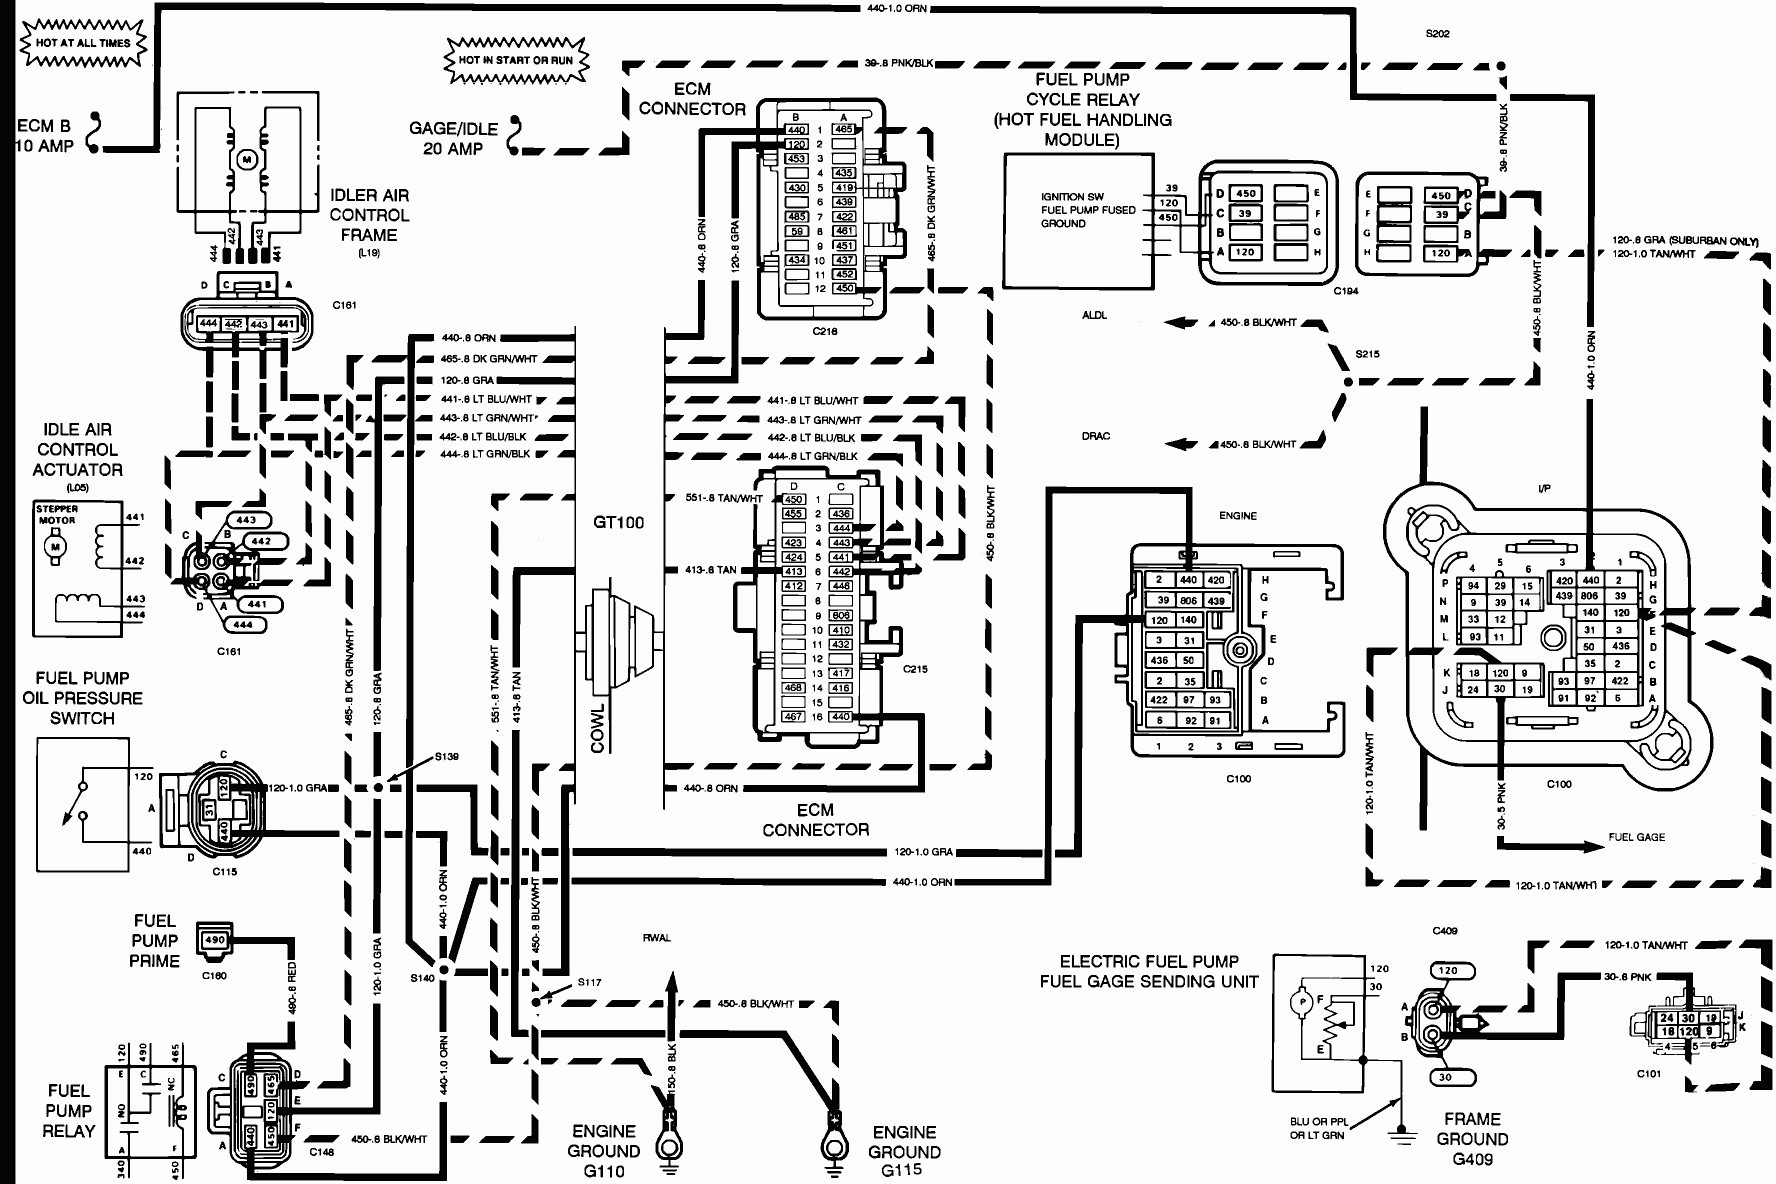 Wire Diagram For 2000 Damon - Wiring Diagram M8 on